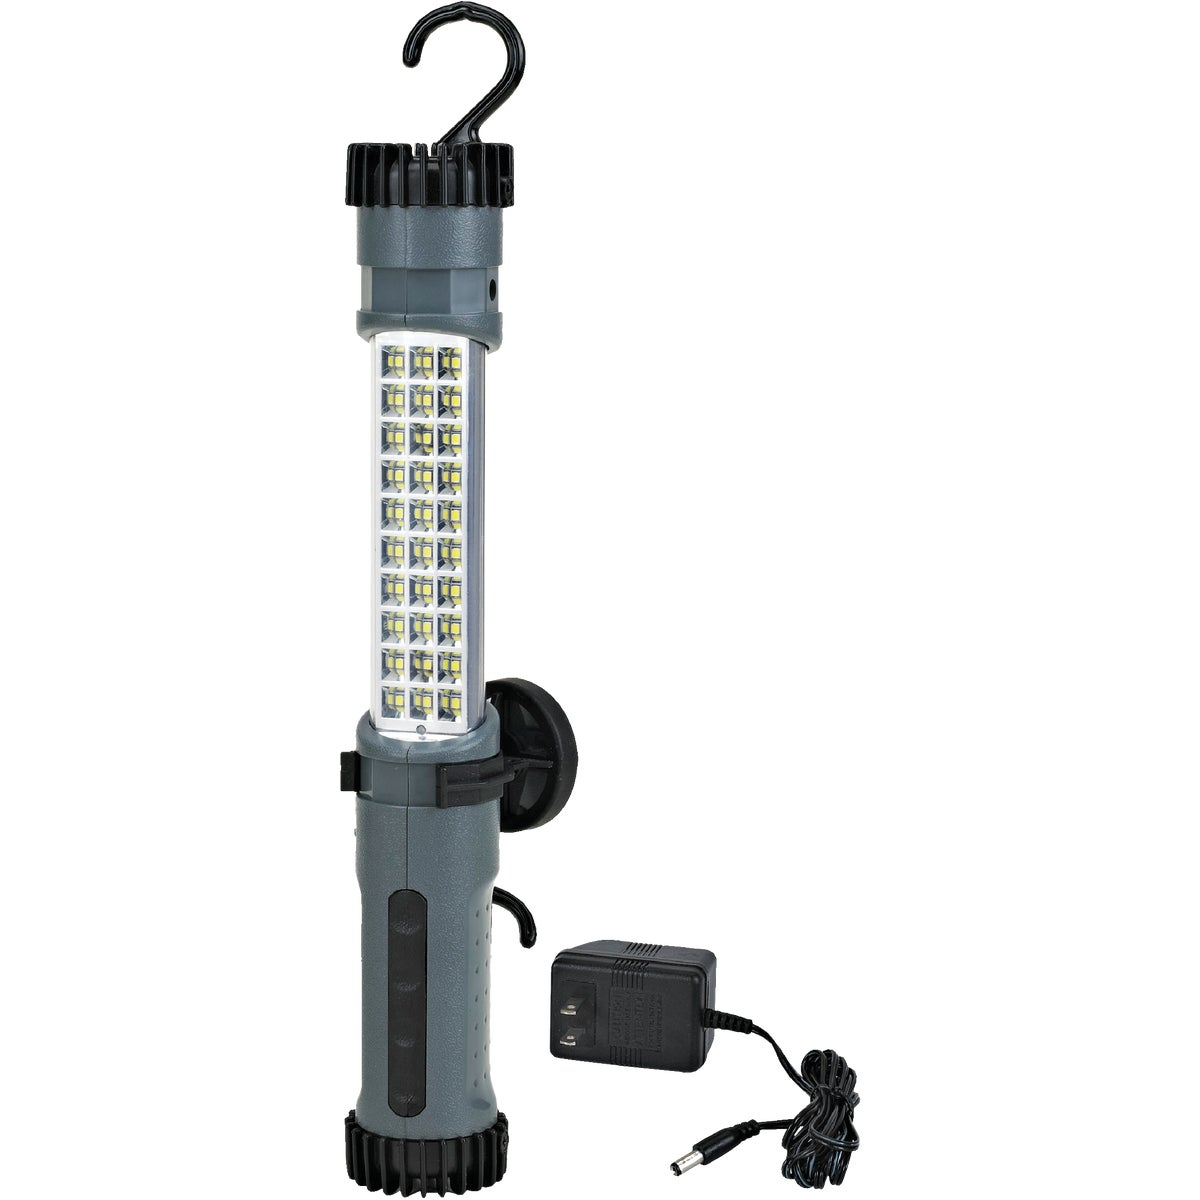 RECHARGE 28 LED LIGHT - KTR3000 by Alert Stamping & Mfg